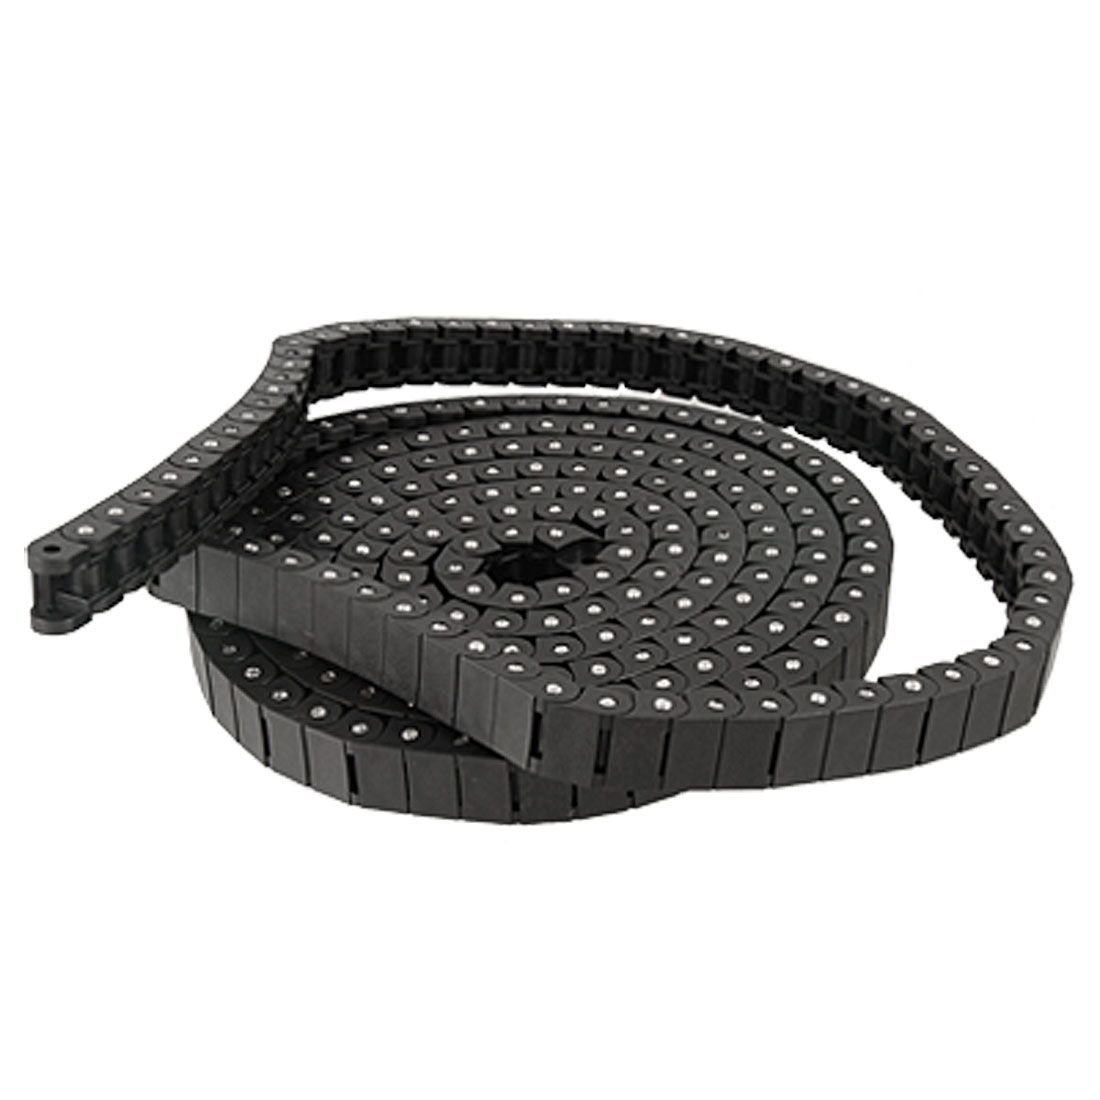 3 Meters Long Plastic 12.7mm Pitch Transmission Roller Chain Black